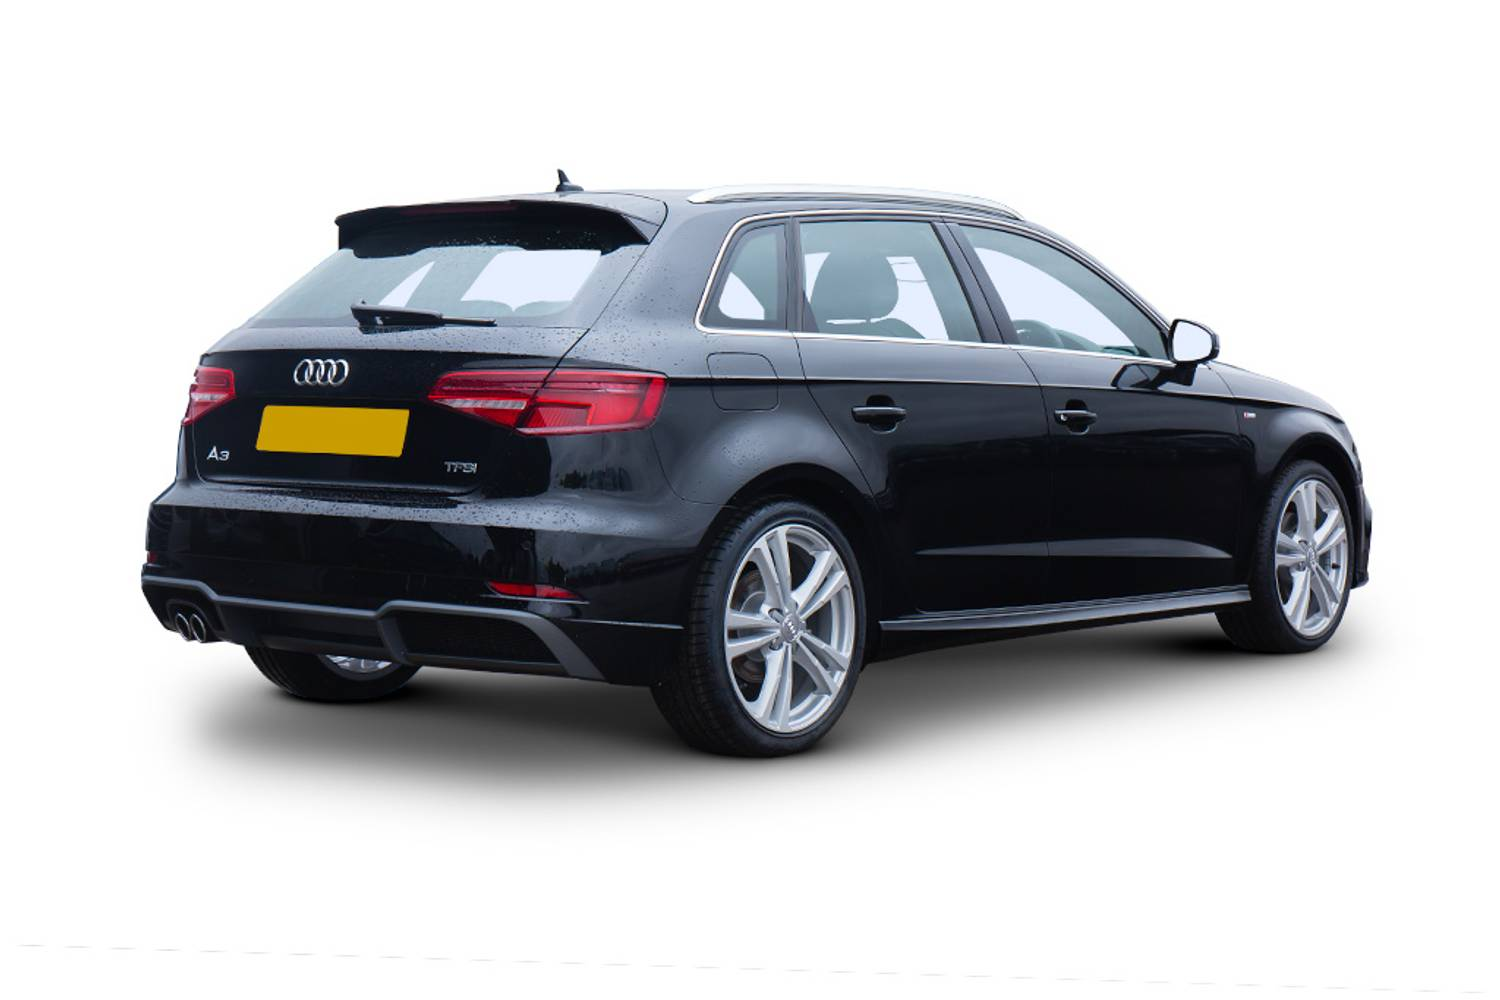 new audi a3 sportback 1 0 tfsi sport 5 door s tronic 2016. Black Bedroom Furniture Sets. Home Design Ideas